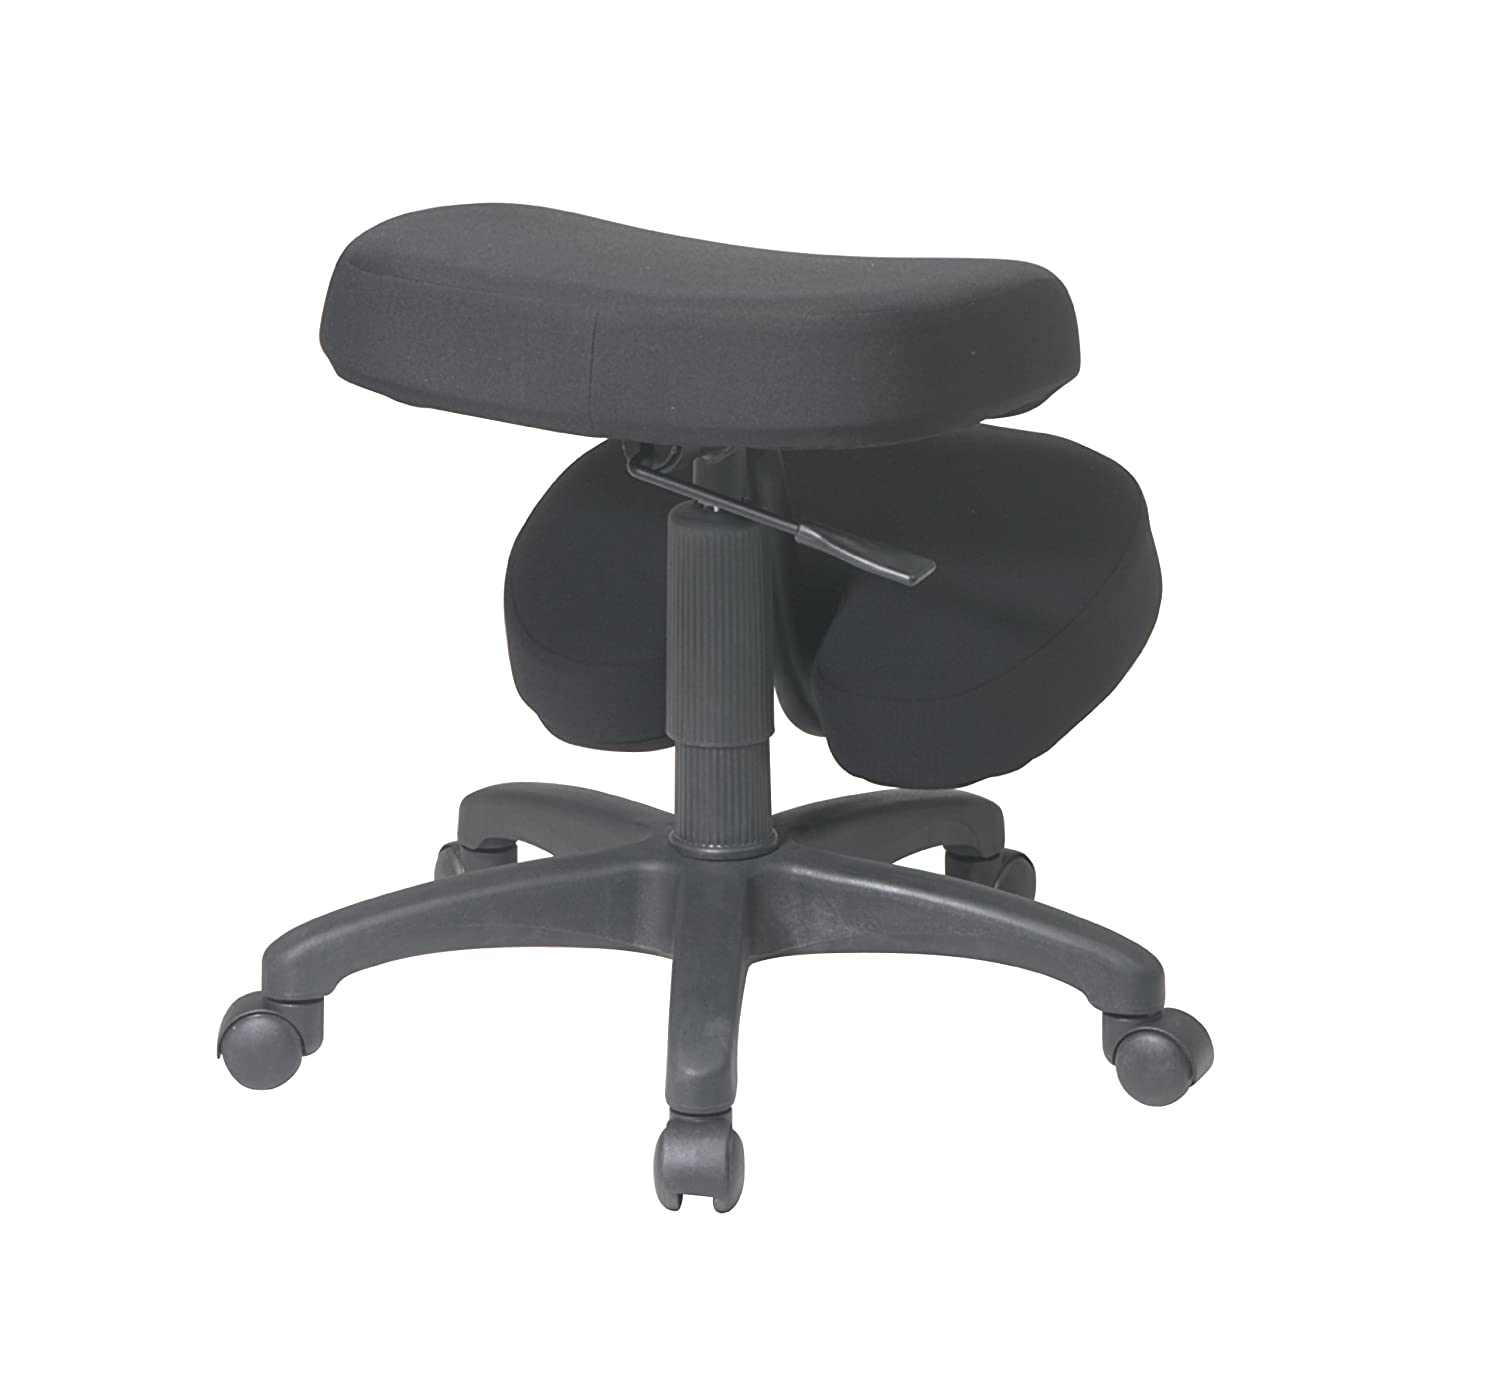 Ergonomic office chair kneeling posture - Amazon Com Office Star Ergonomically Designed Knee Chair With Casters Memory Foam And 5 Star Base Black Kitchen Dining